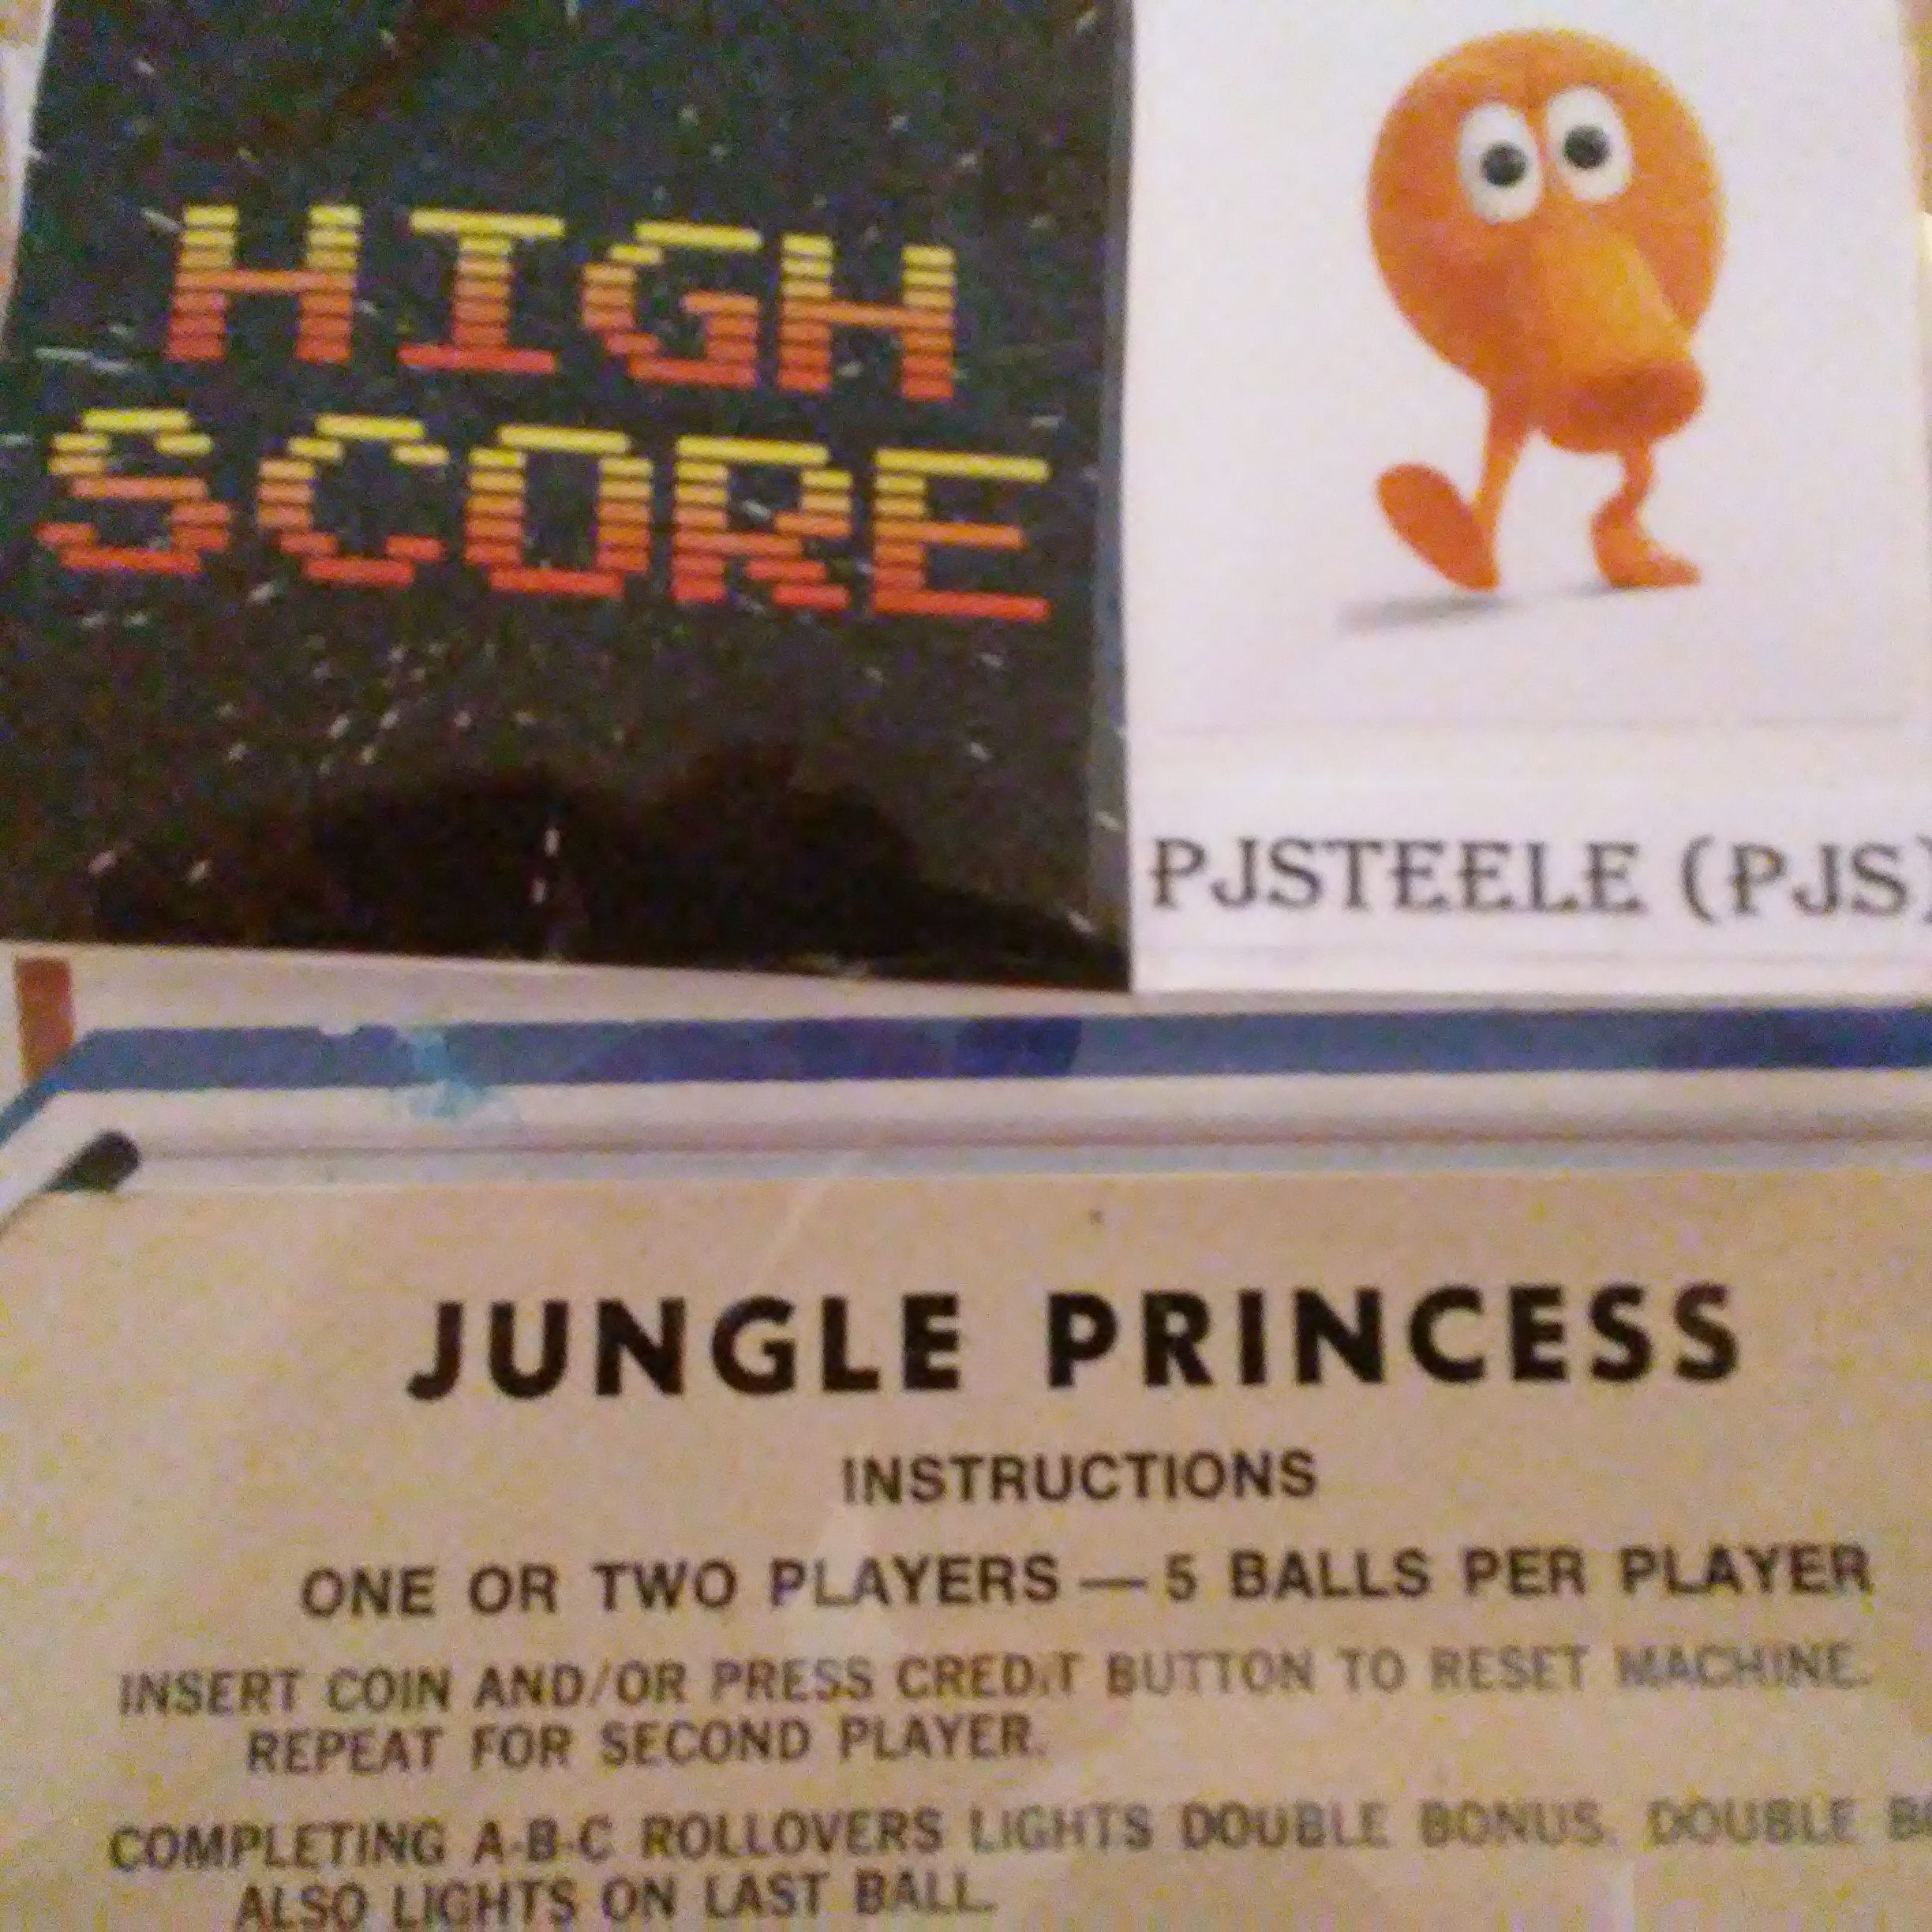 Pjsteele: Jungle Princess (Pinball: 5 Balls) 32,830 points on 2017-12-31 19:42:38